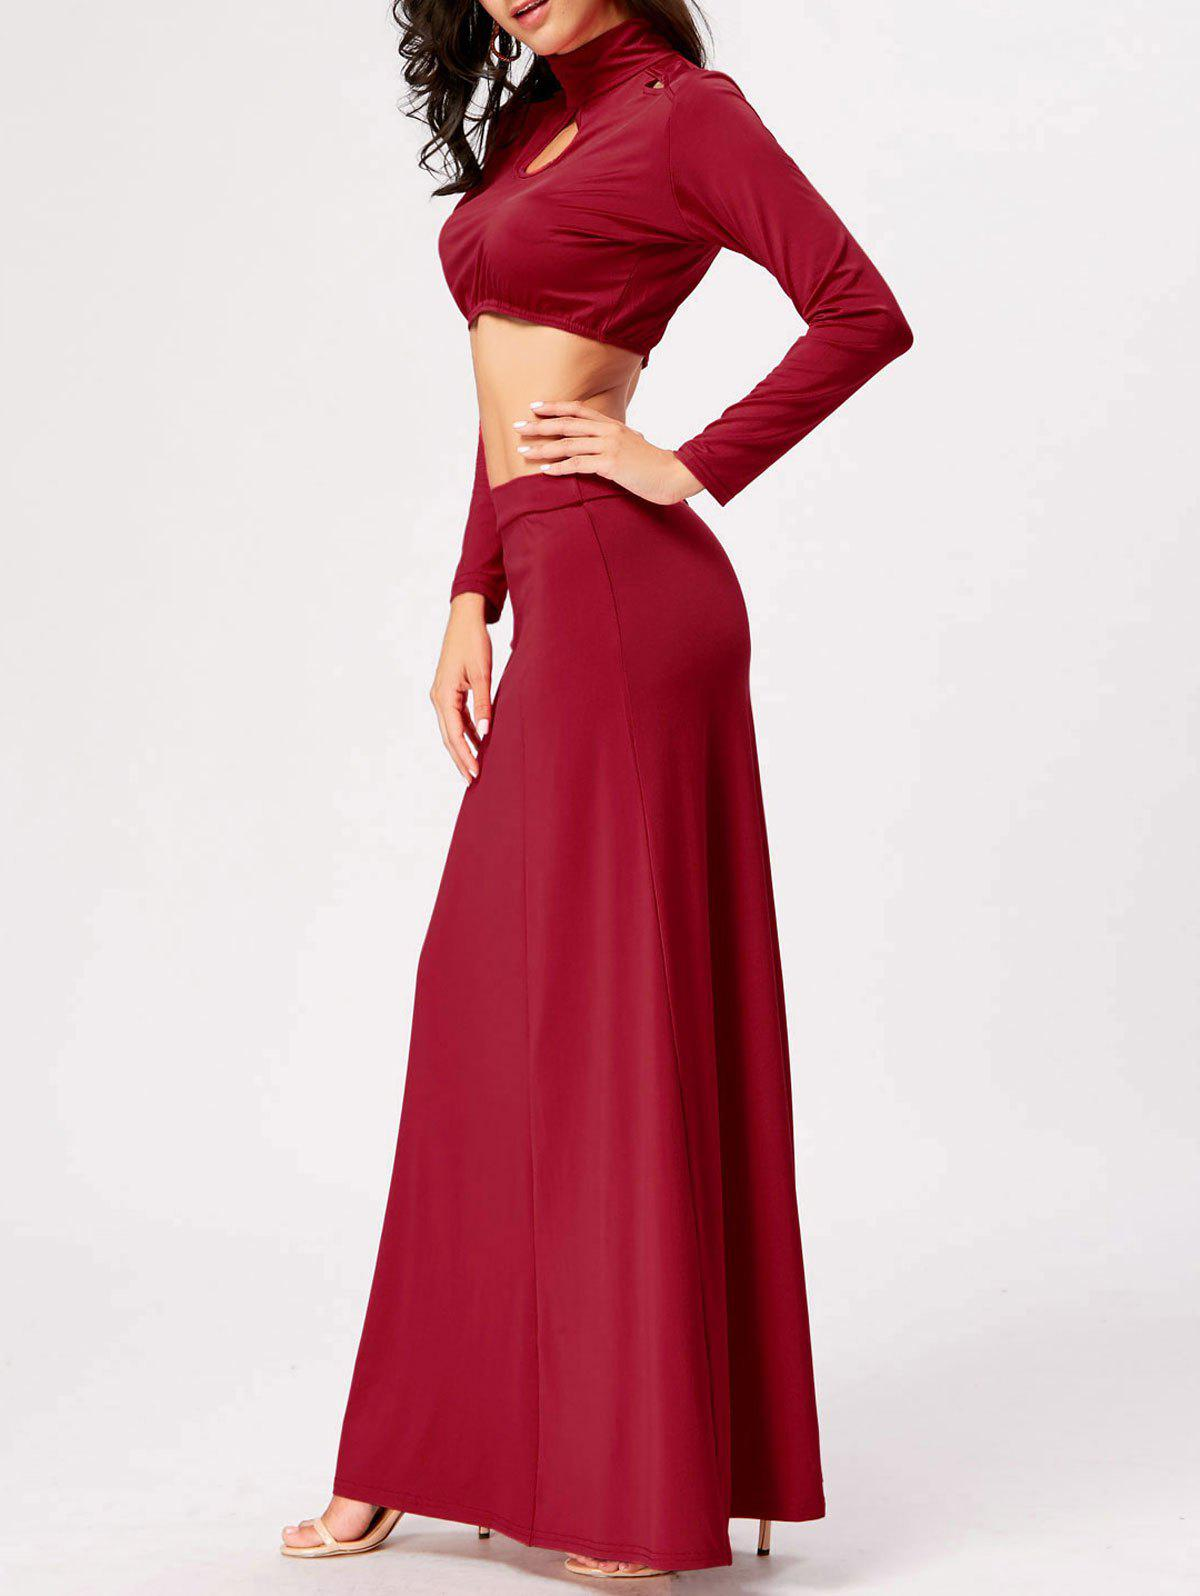 Cut Out High Waist Two Piece Party Dress - RED 2XL